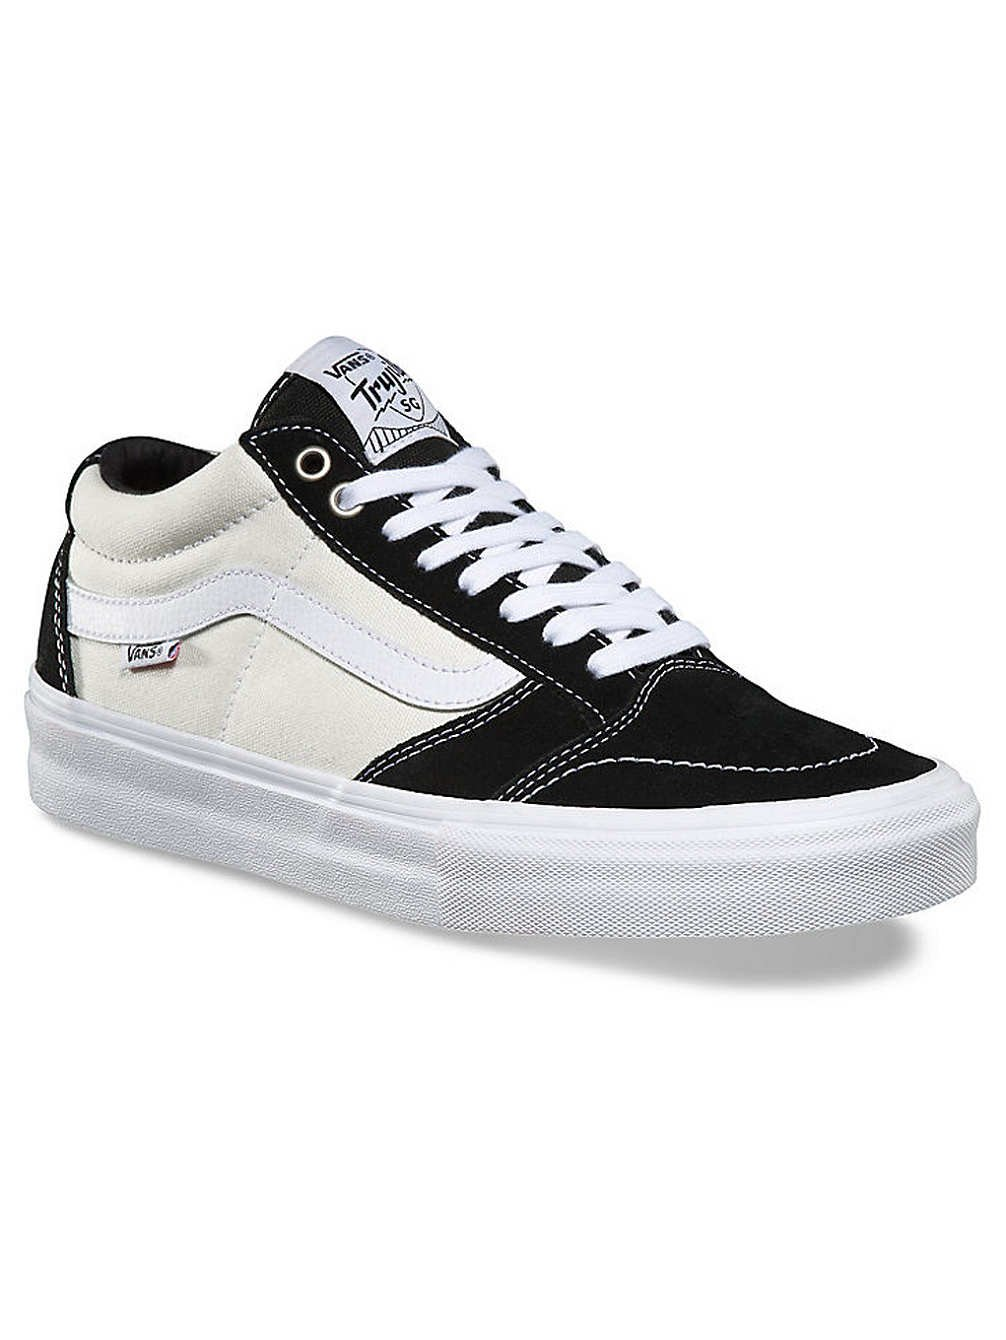 93dafdac7a Vans TNT SG  Amazon.co.uk  Shoes   Bags